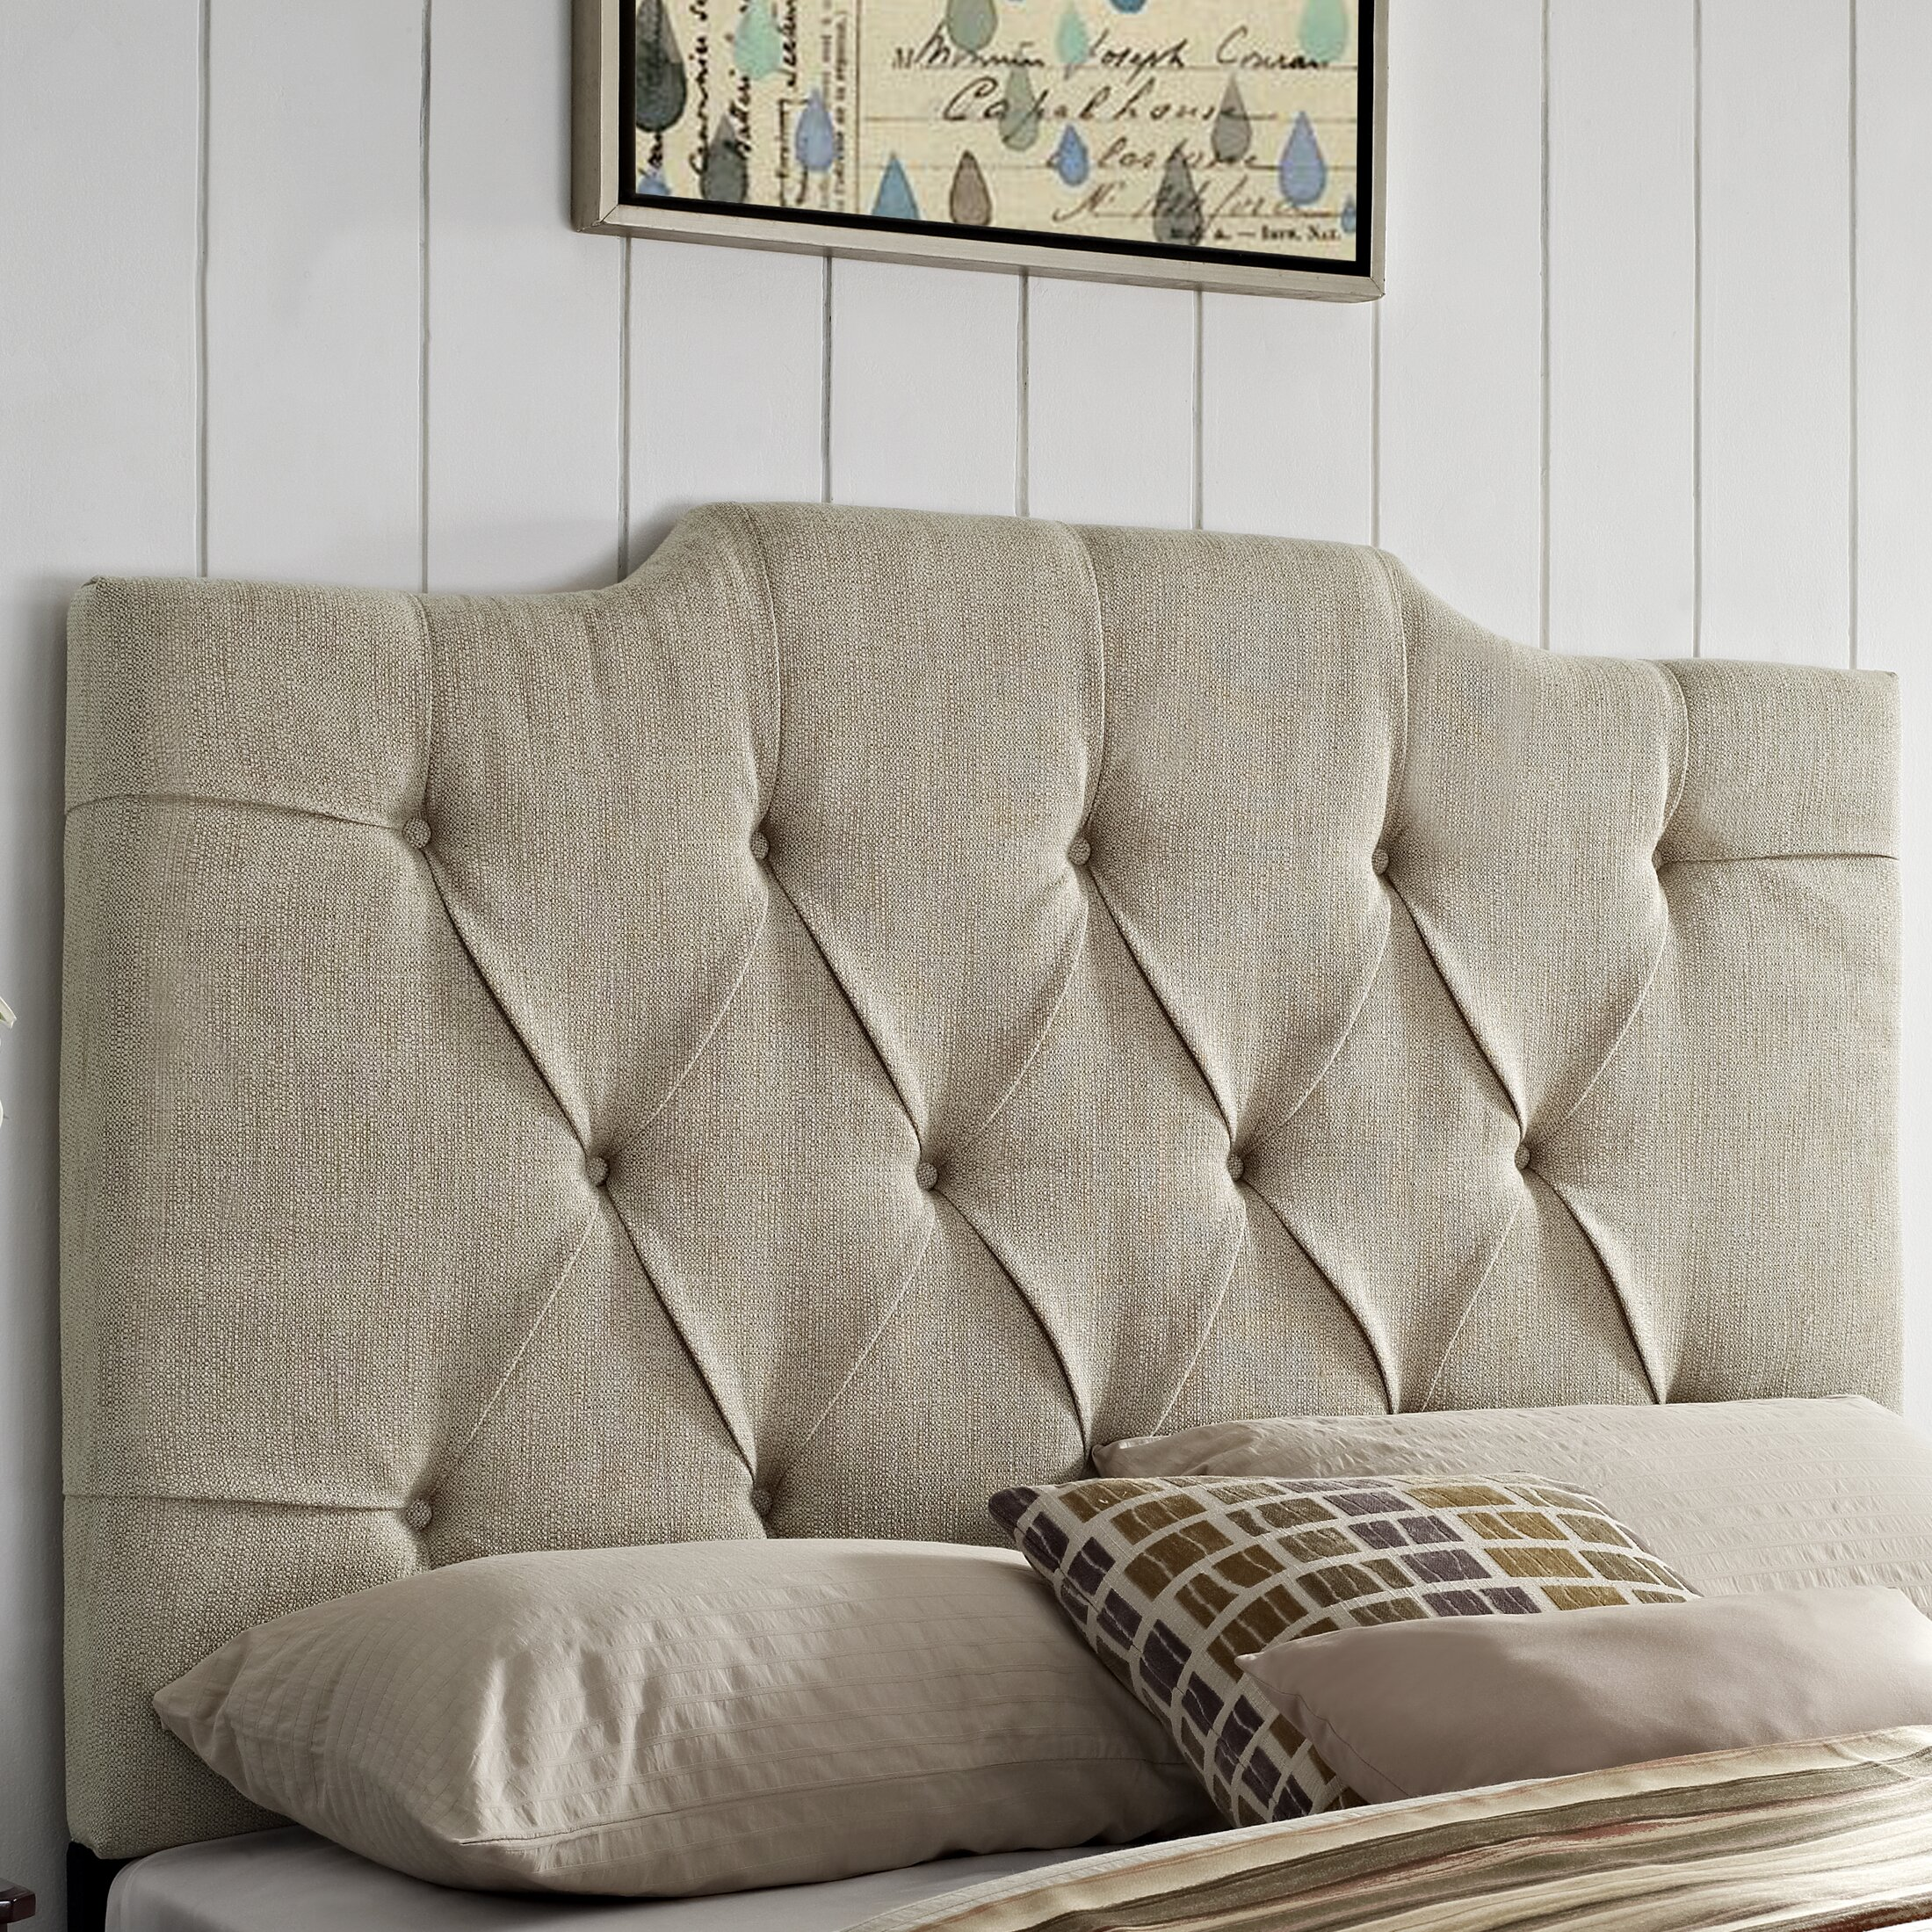 Darby Home Co Martha Upholstered Panel Headboard & Reviews